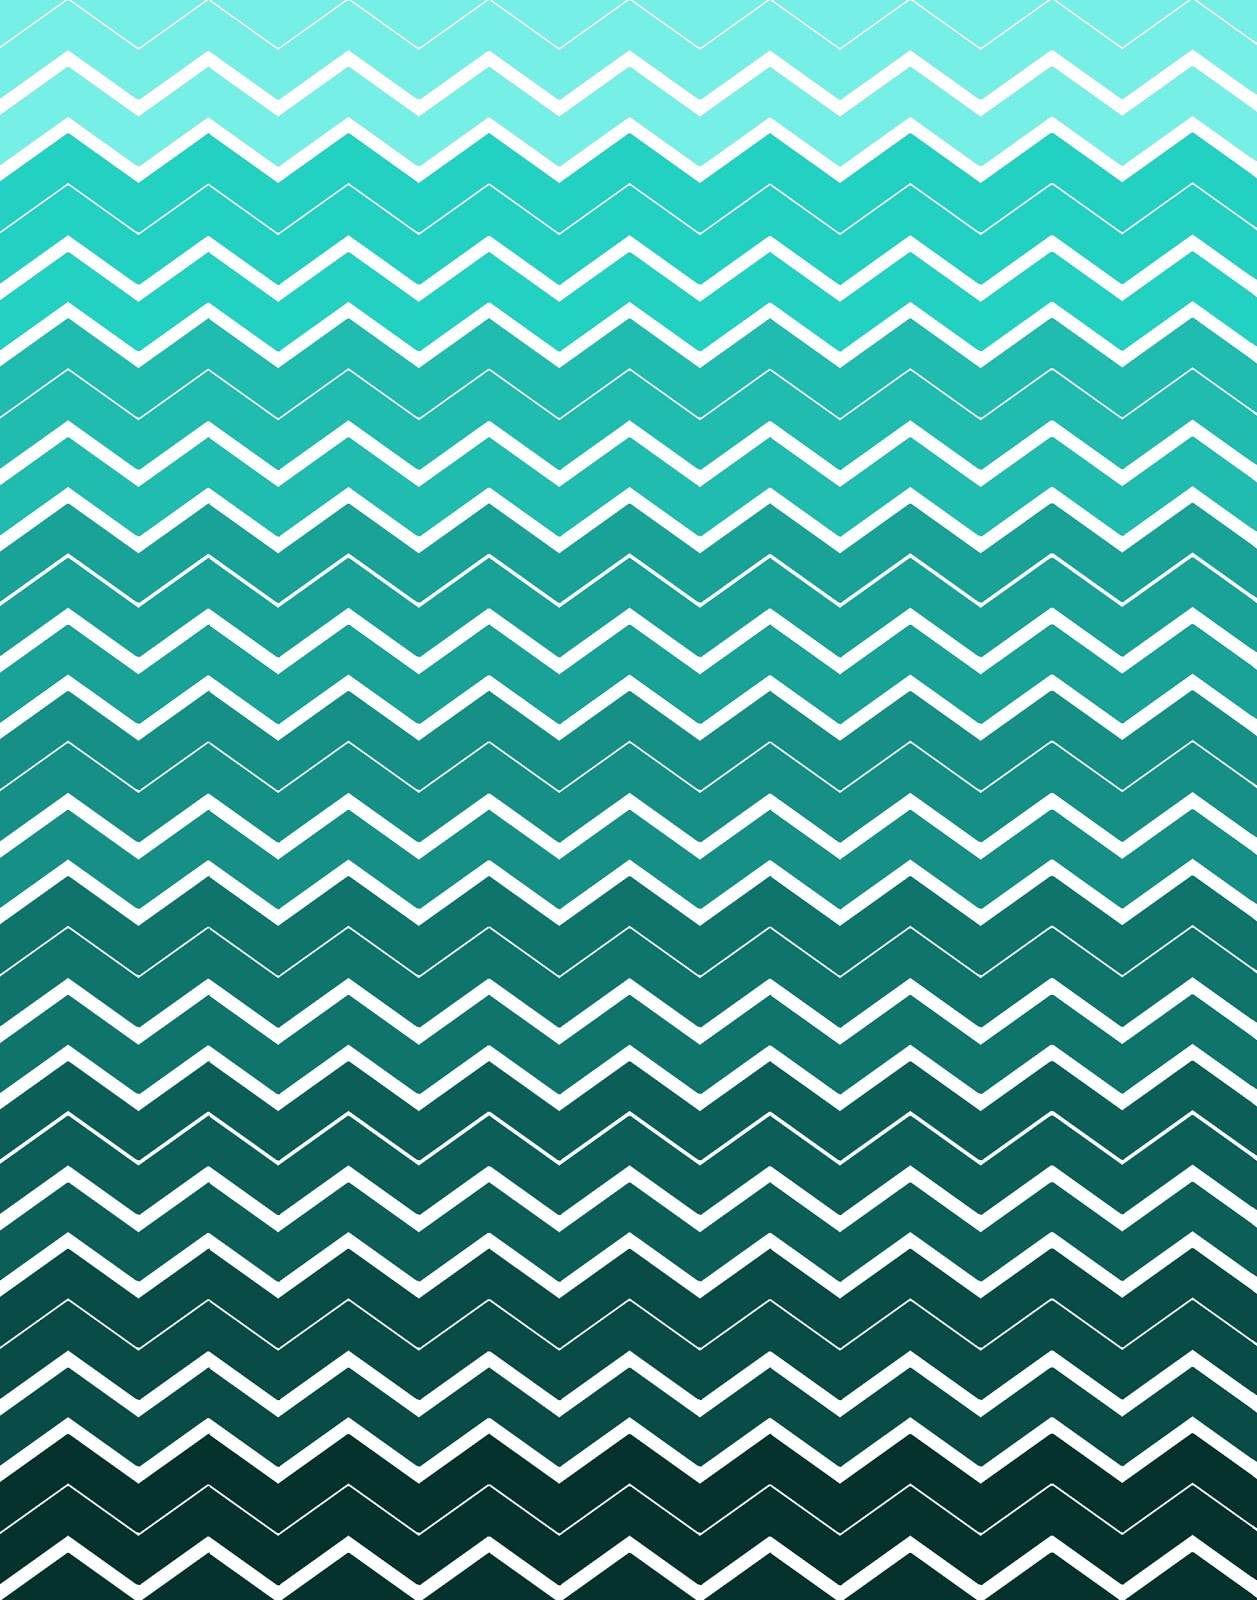 chevron pattern background - HD 1257×1600